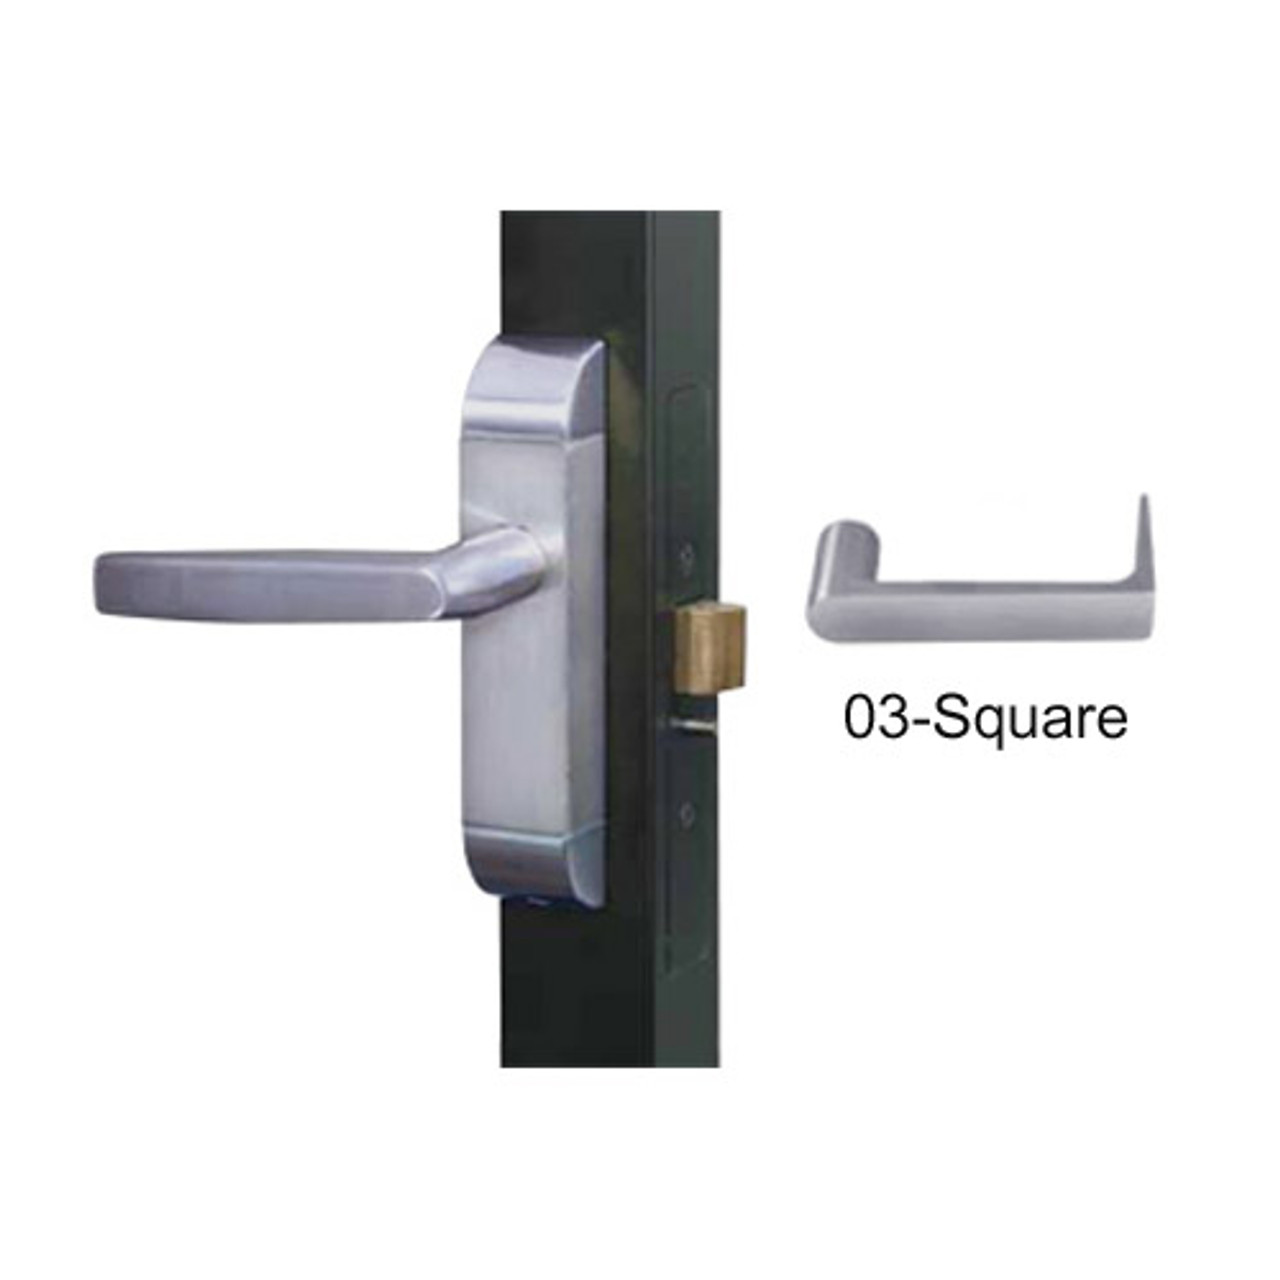 4600-03-551-US32D Adams Rite Heavy Duty Square Deadlatch Handles in Satin Stainless Finish